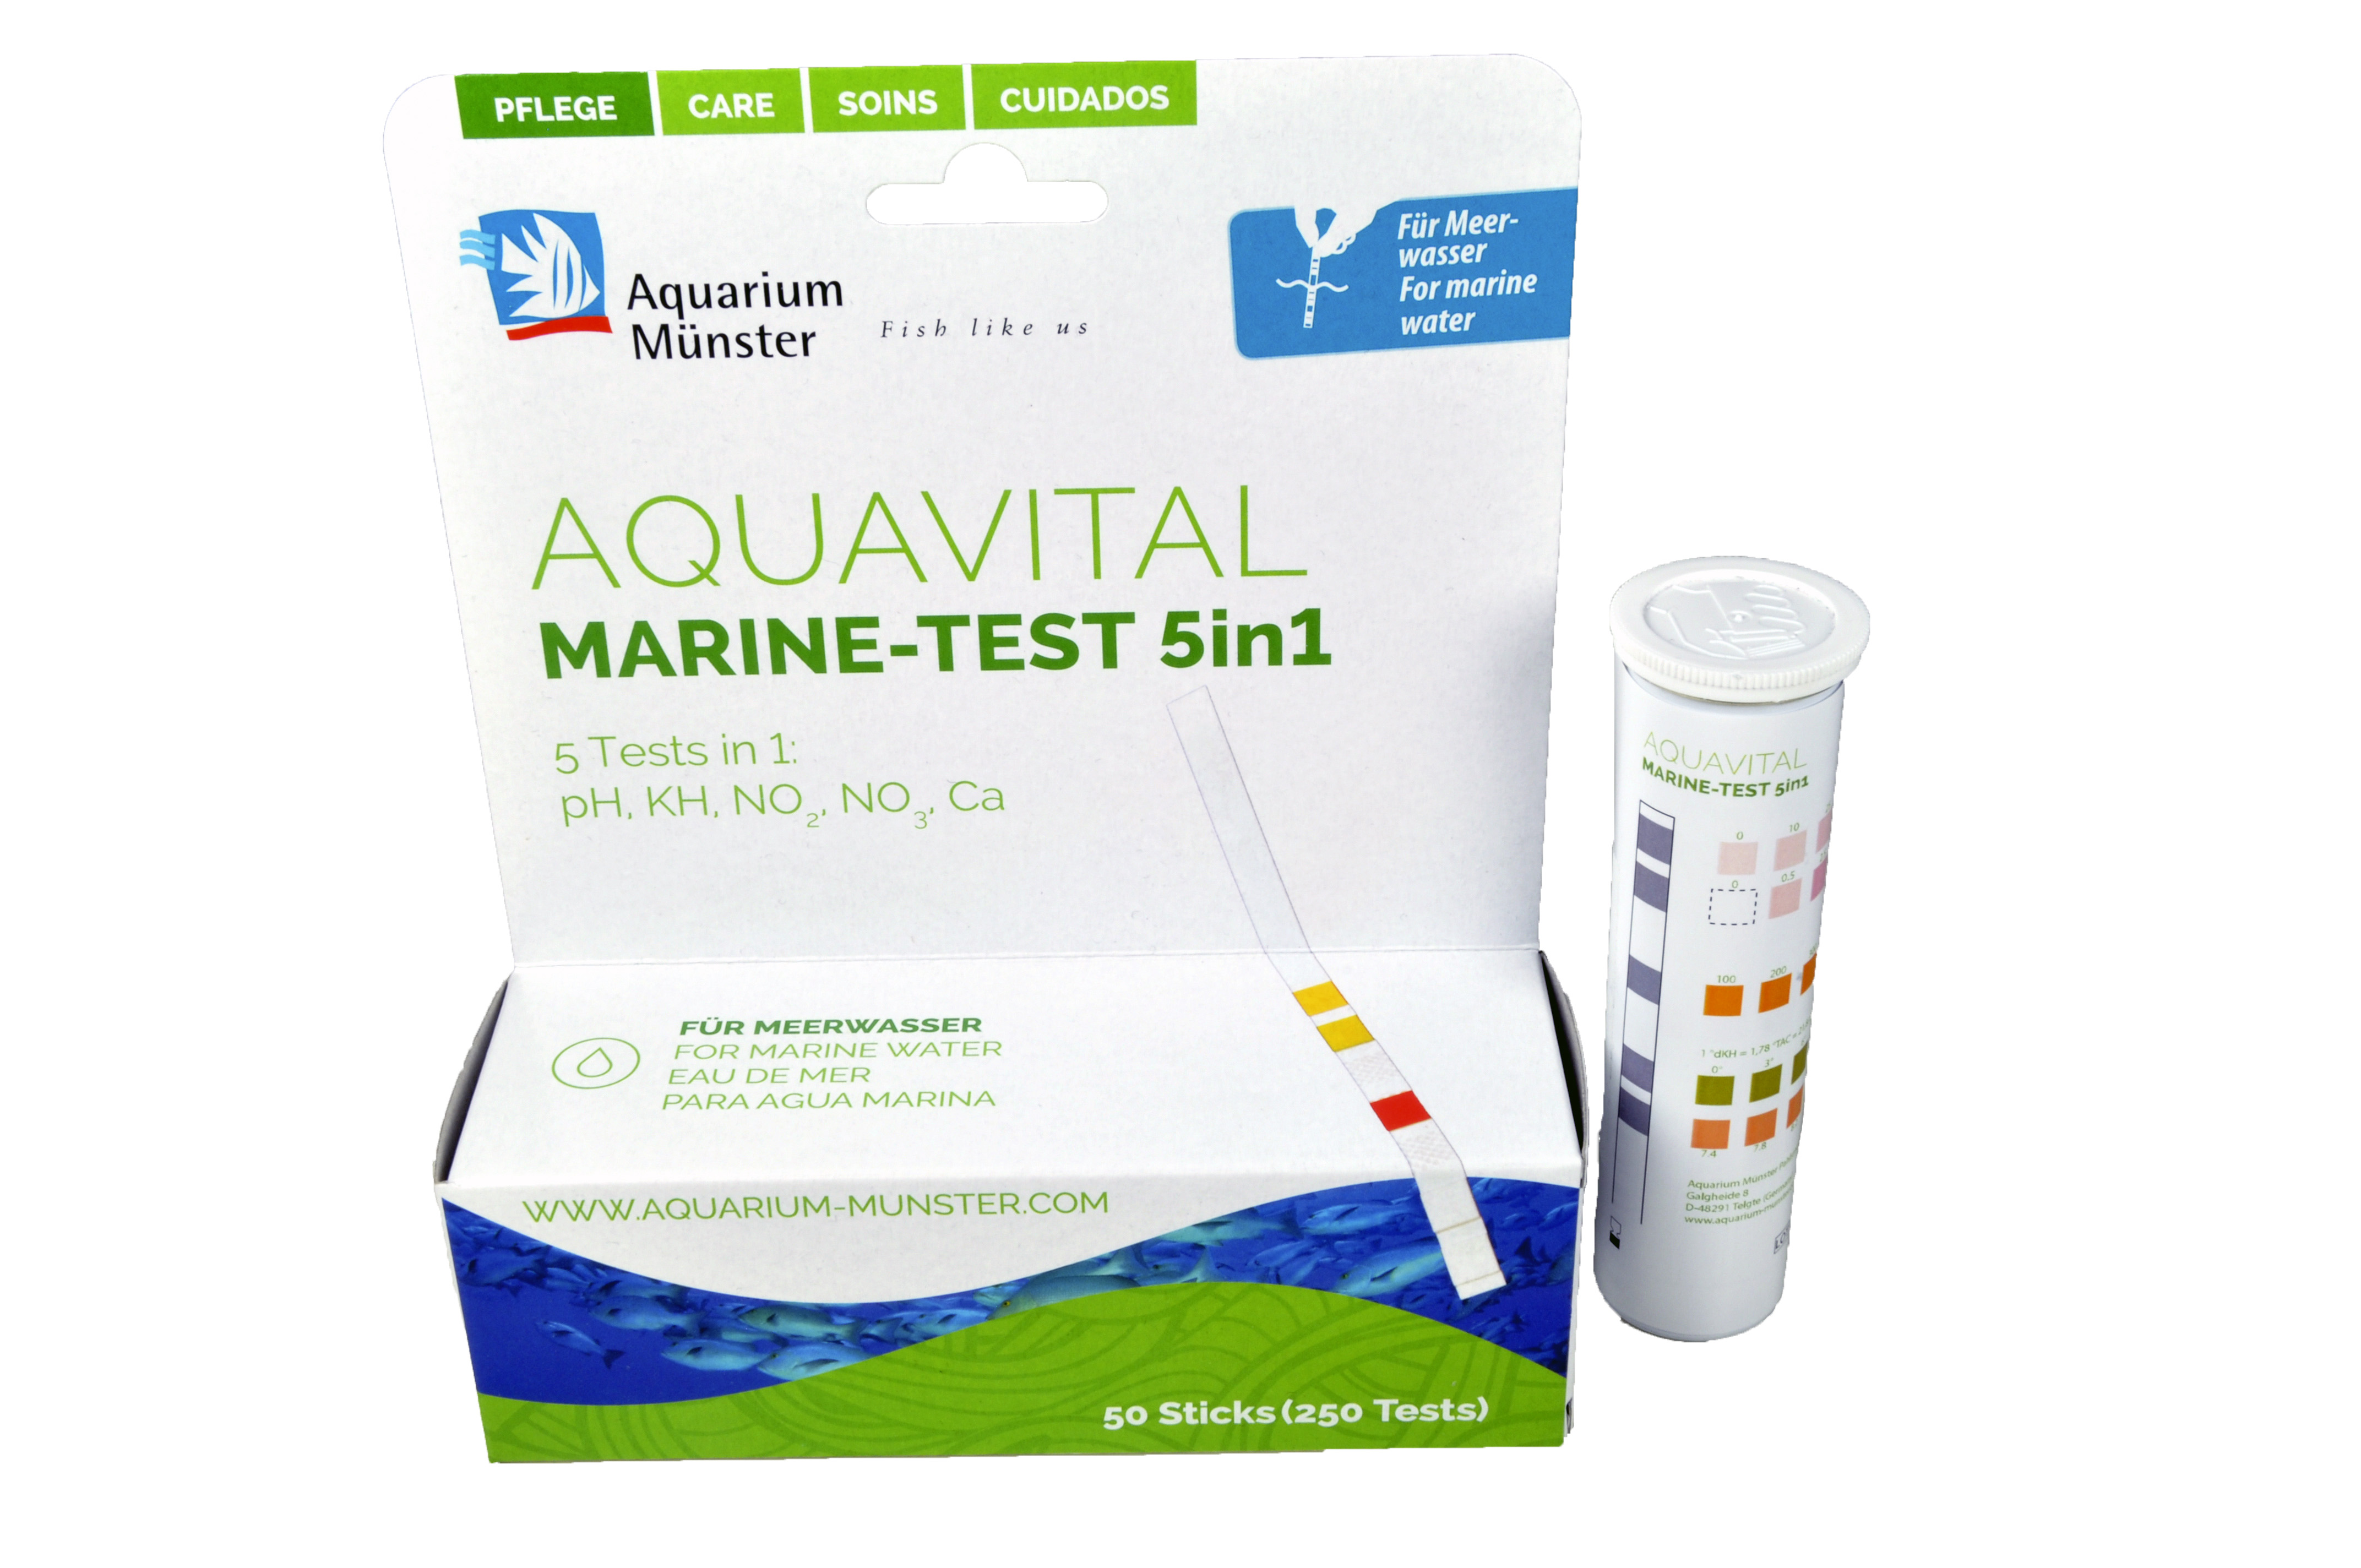 Aquavital Introduces MARINE-TEST 5in1 Water Test Strips